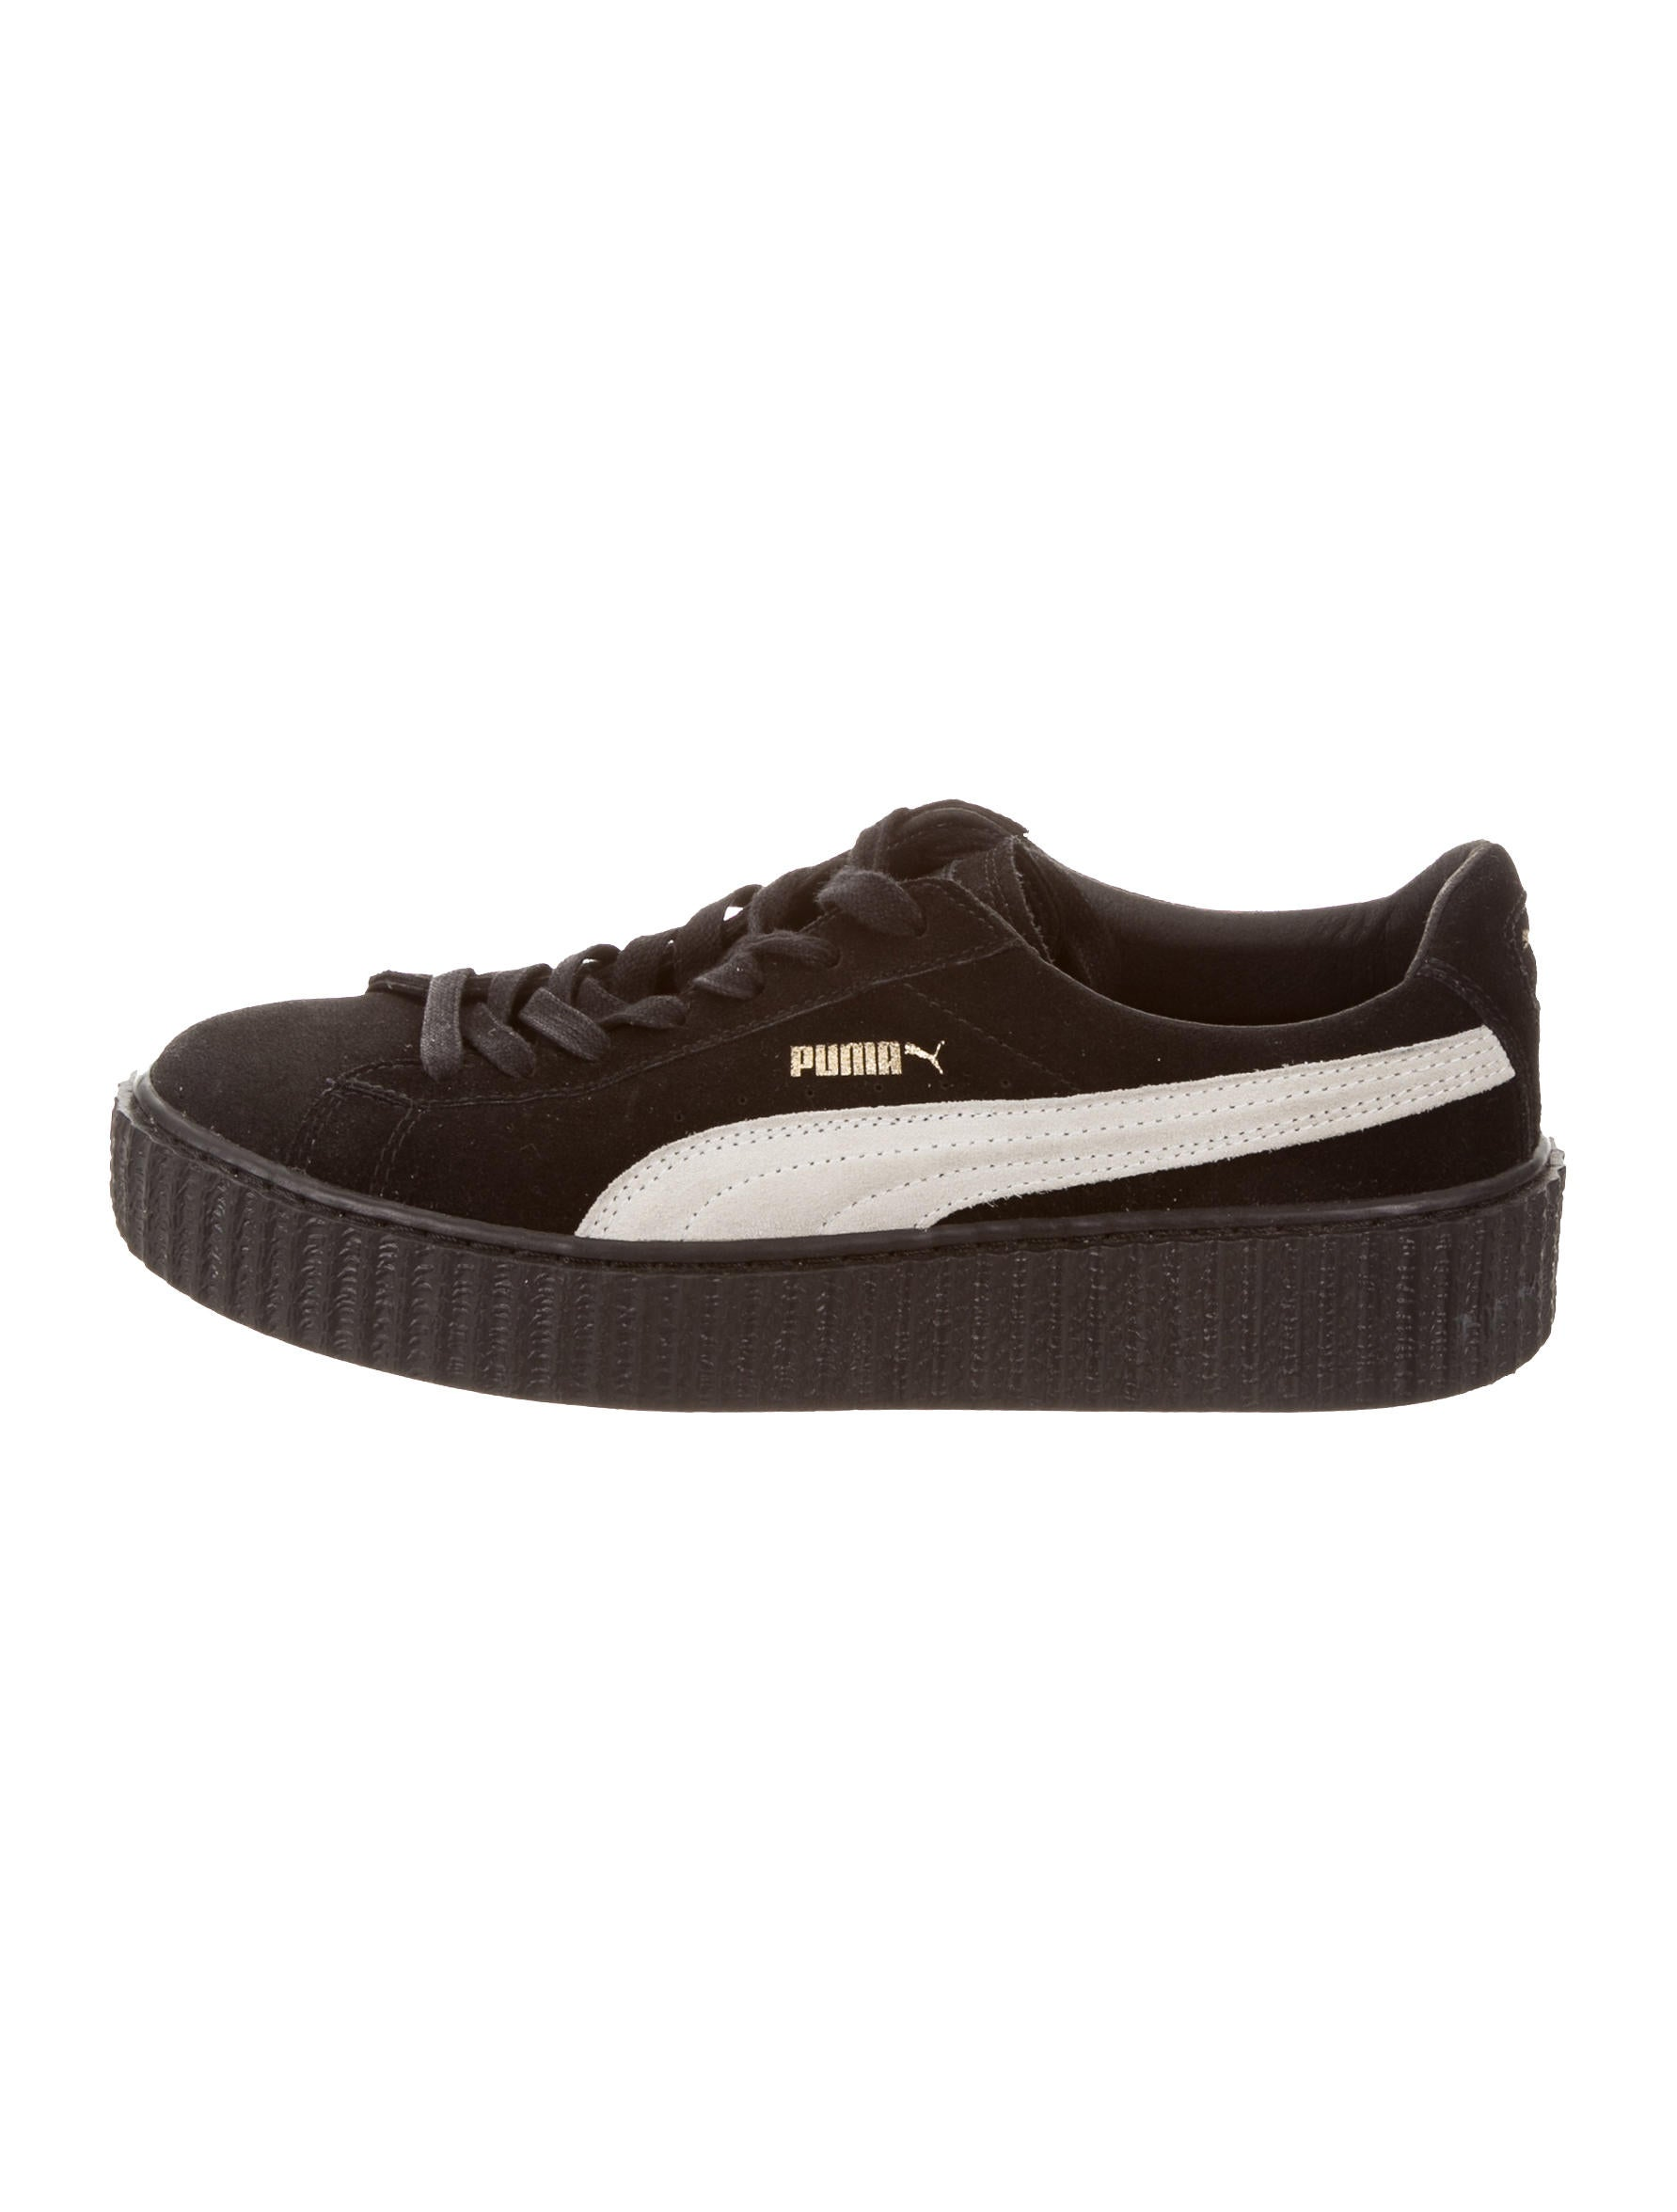 Rihanna Fenty x Puma Suede Creeper Sneakers Shoes  : WRFPU200761enlarged from www.therealreal.com size 1783 x 2352 jpeg 130kB